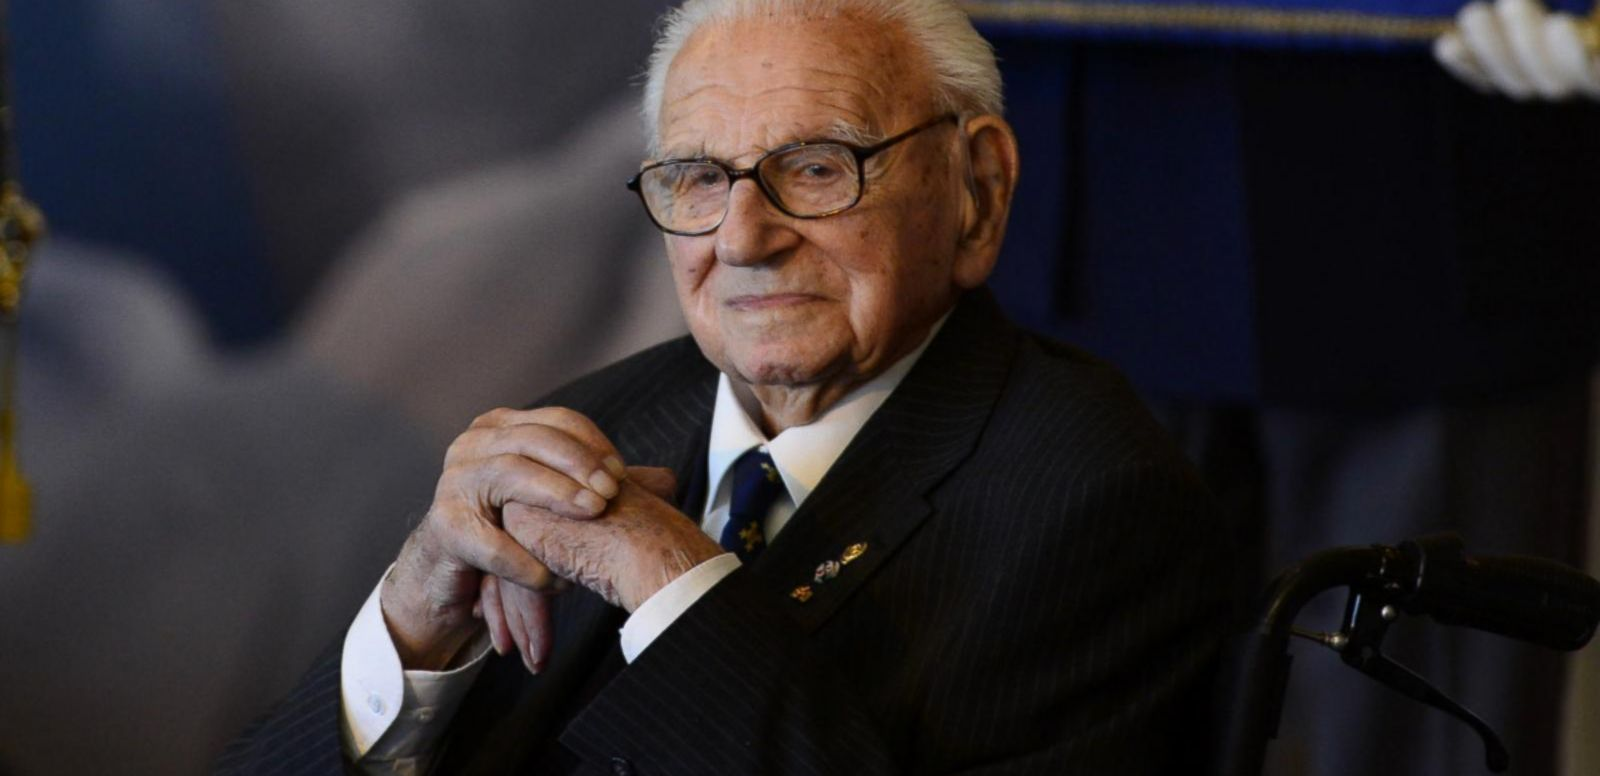 VIDEO: 'Britain's Schindler,' Who Saved Over 650 Jewish Children During Holocaust, Dies